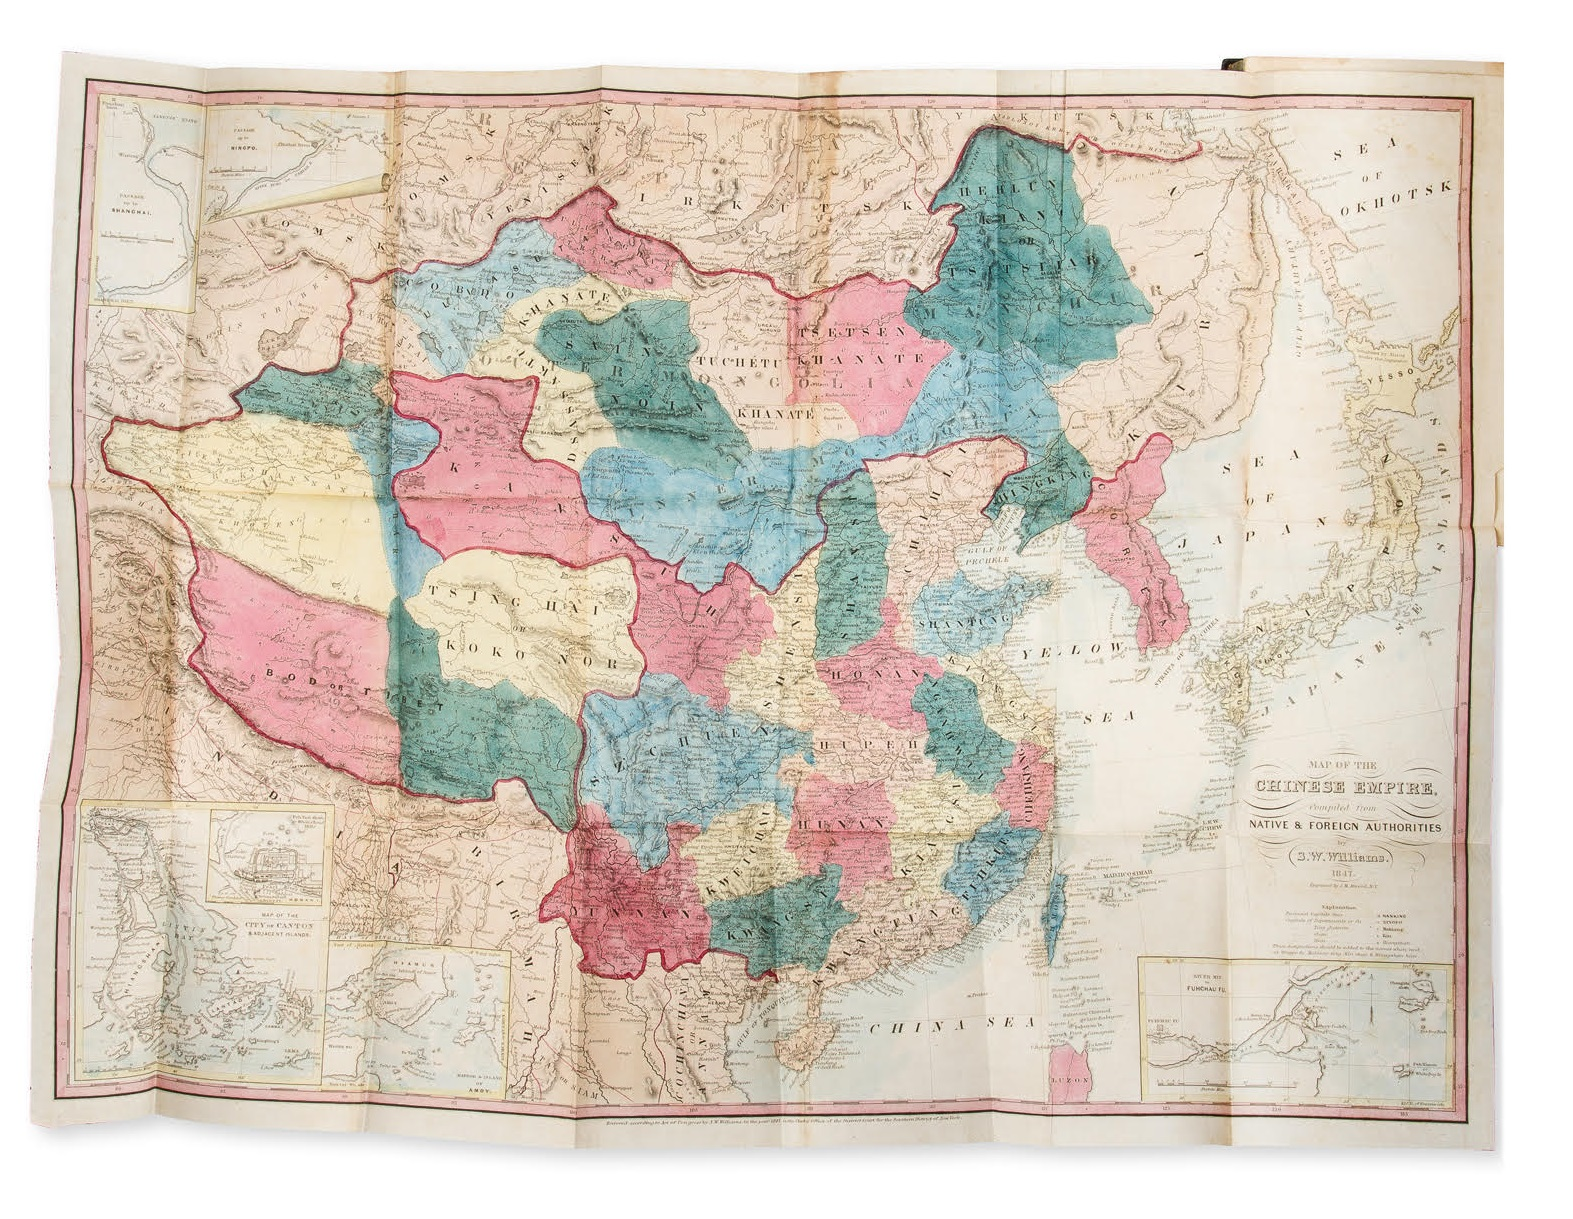 WILLIAMS, A Chinese commercial guide, 1856